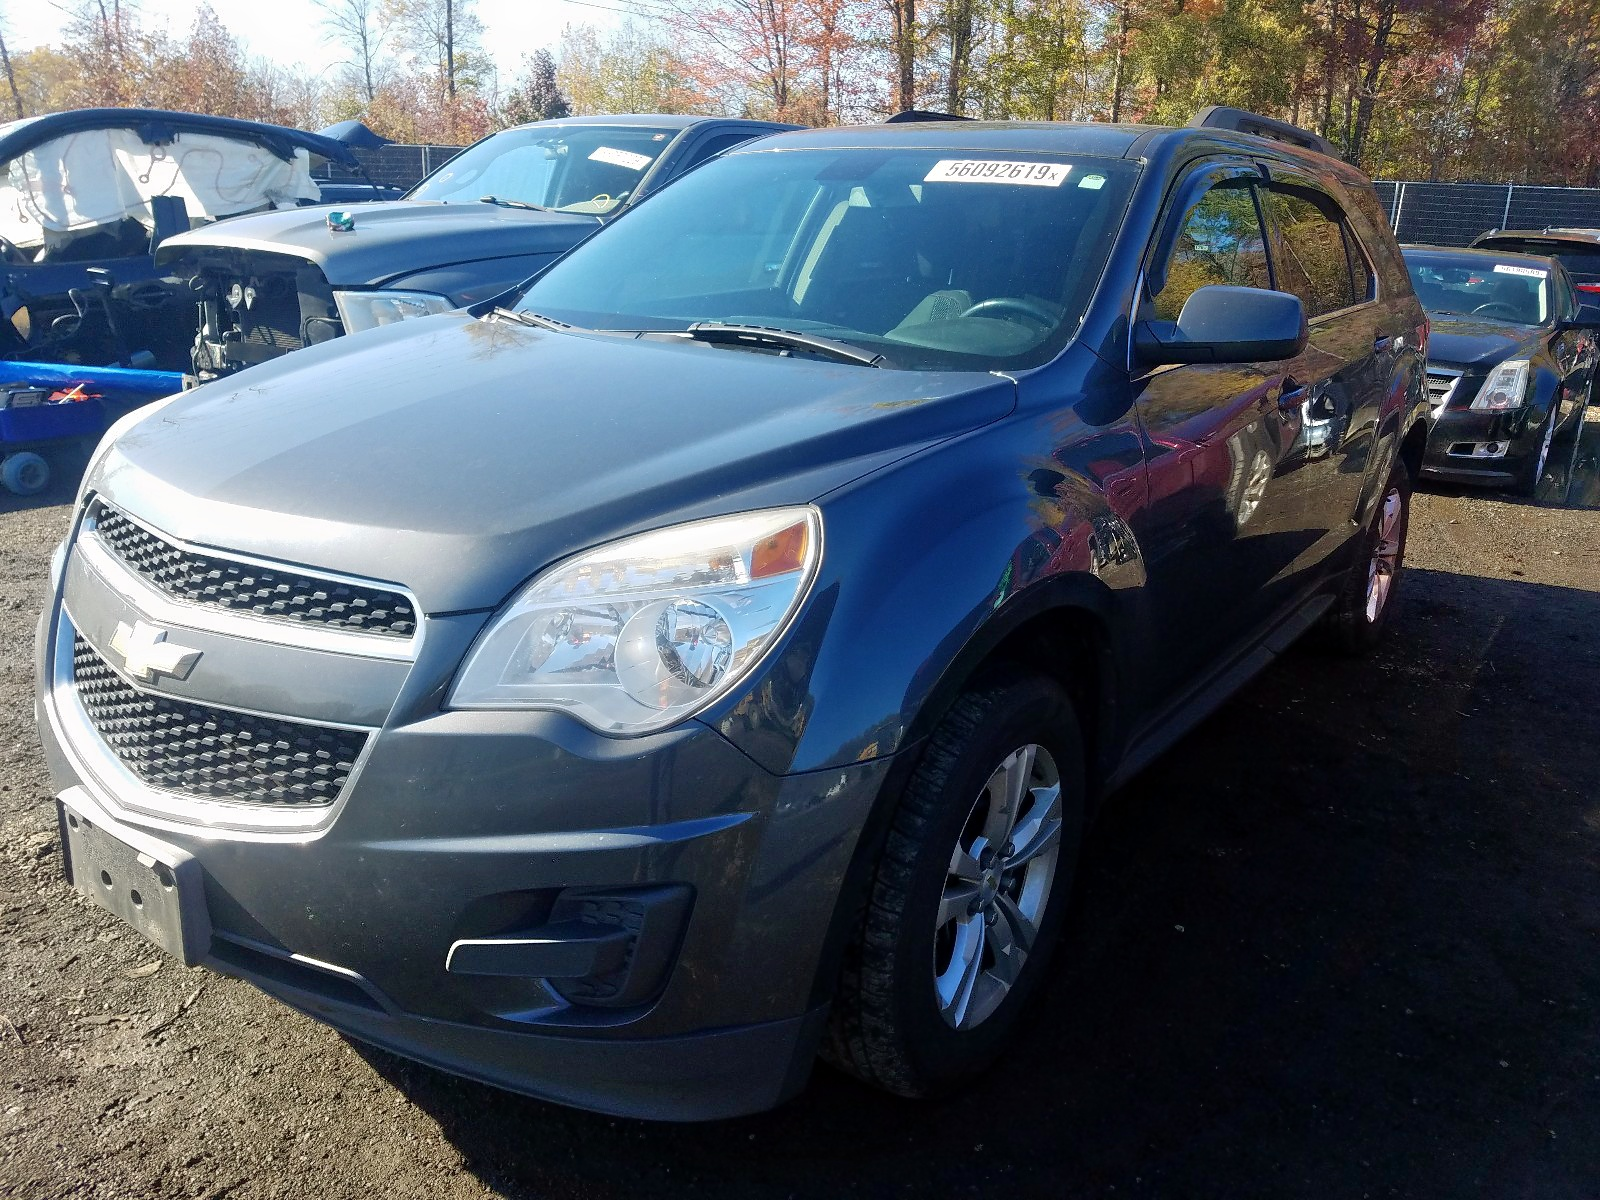 2CNFLEEC8B6219120 - 2011 Chevrolet Equinox Lt 2.4L Right View